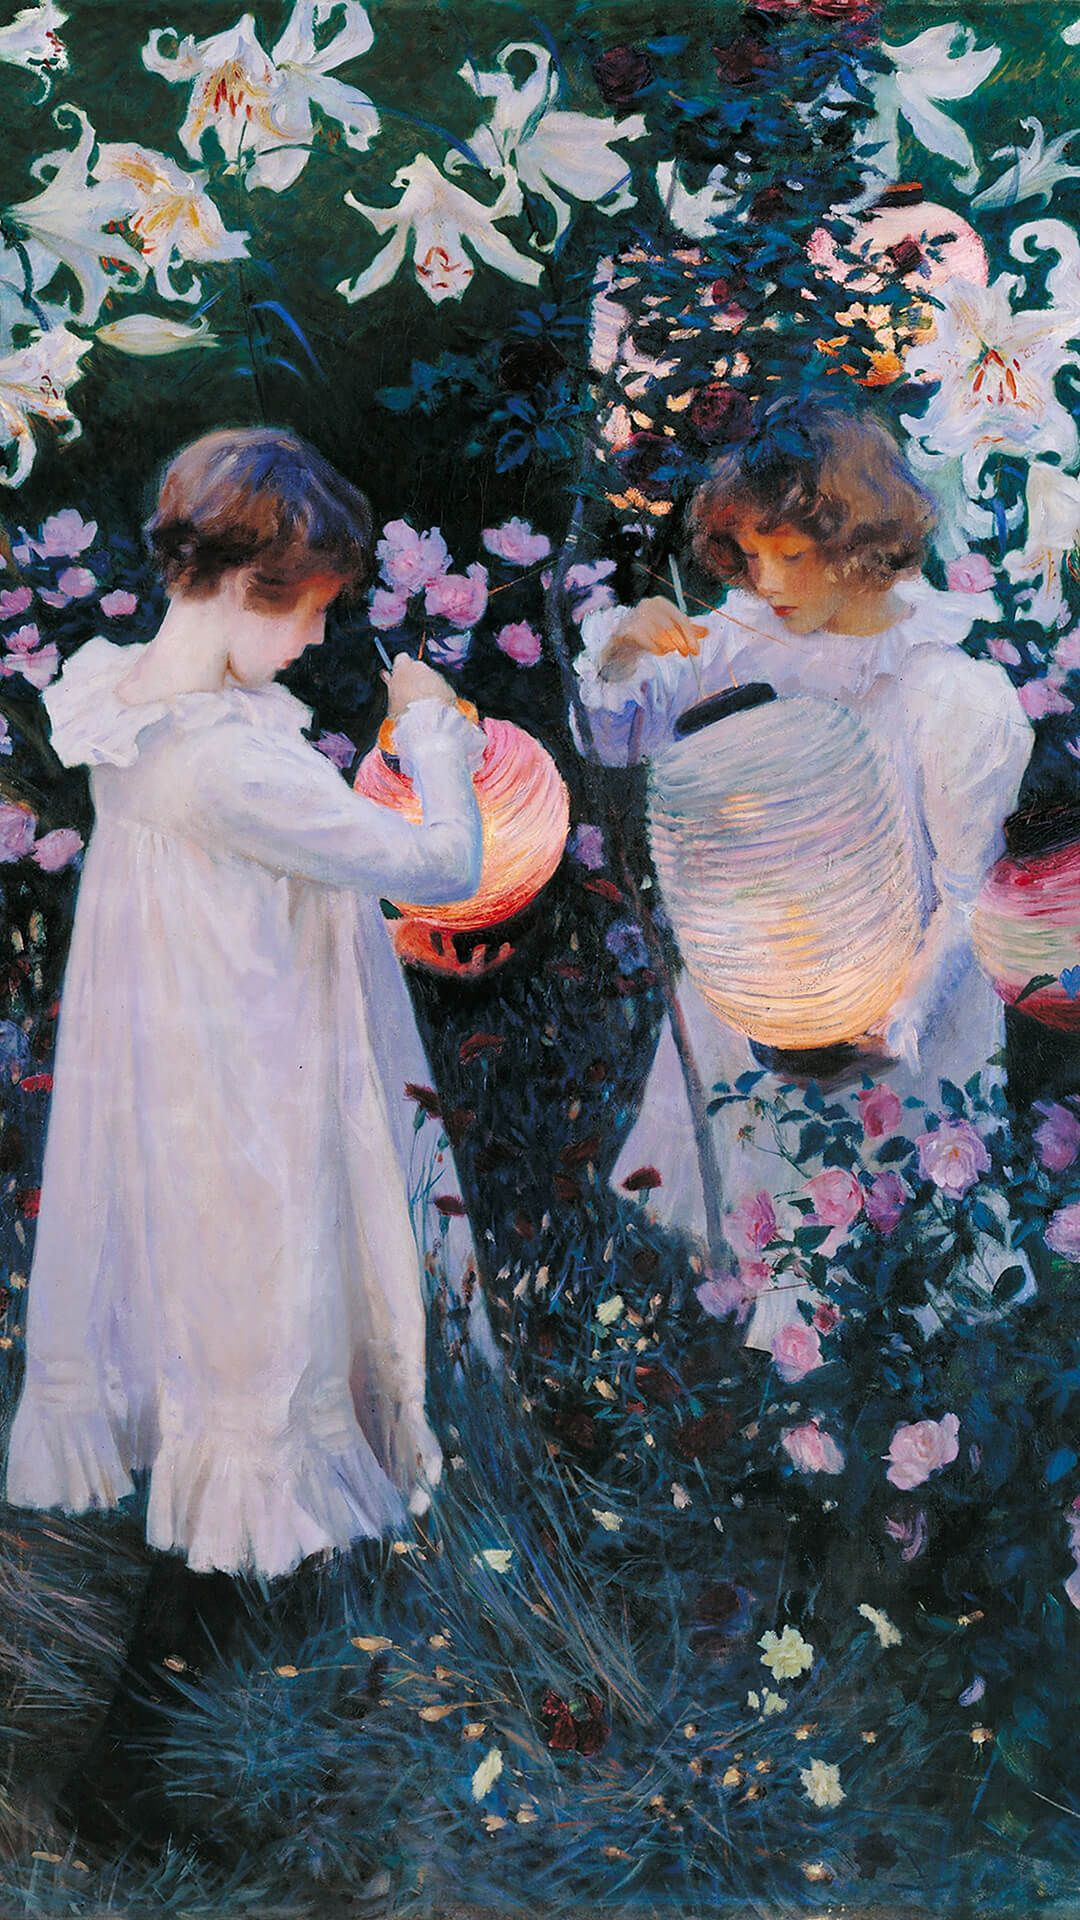 John Singer Sargent-Carnation Lily Lily Rose_1080x1920 | wallpaper ...